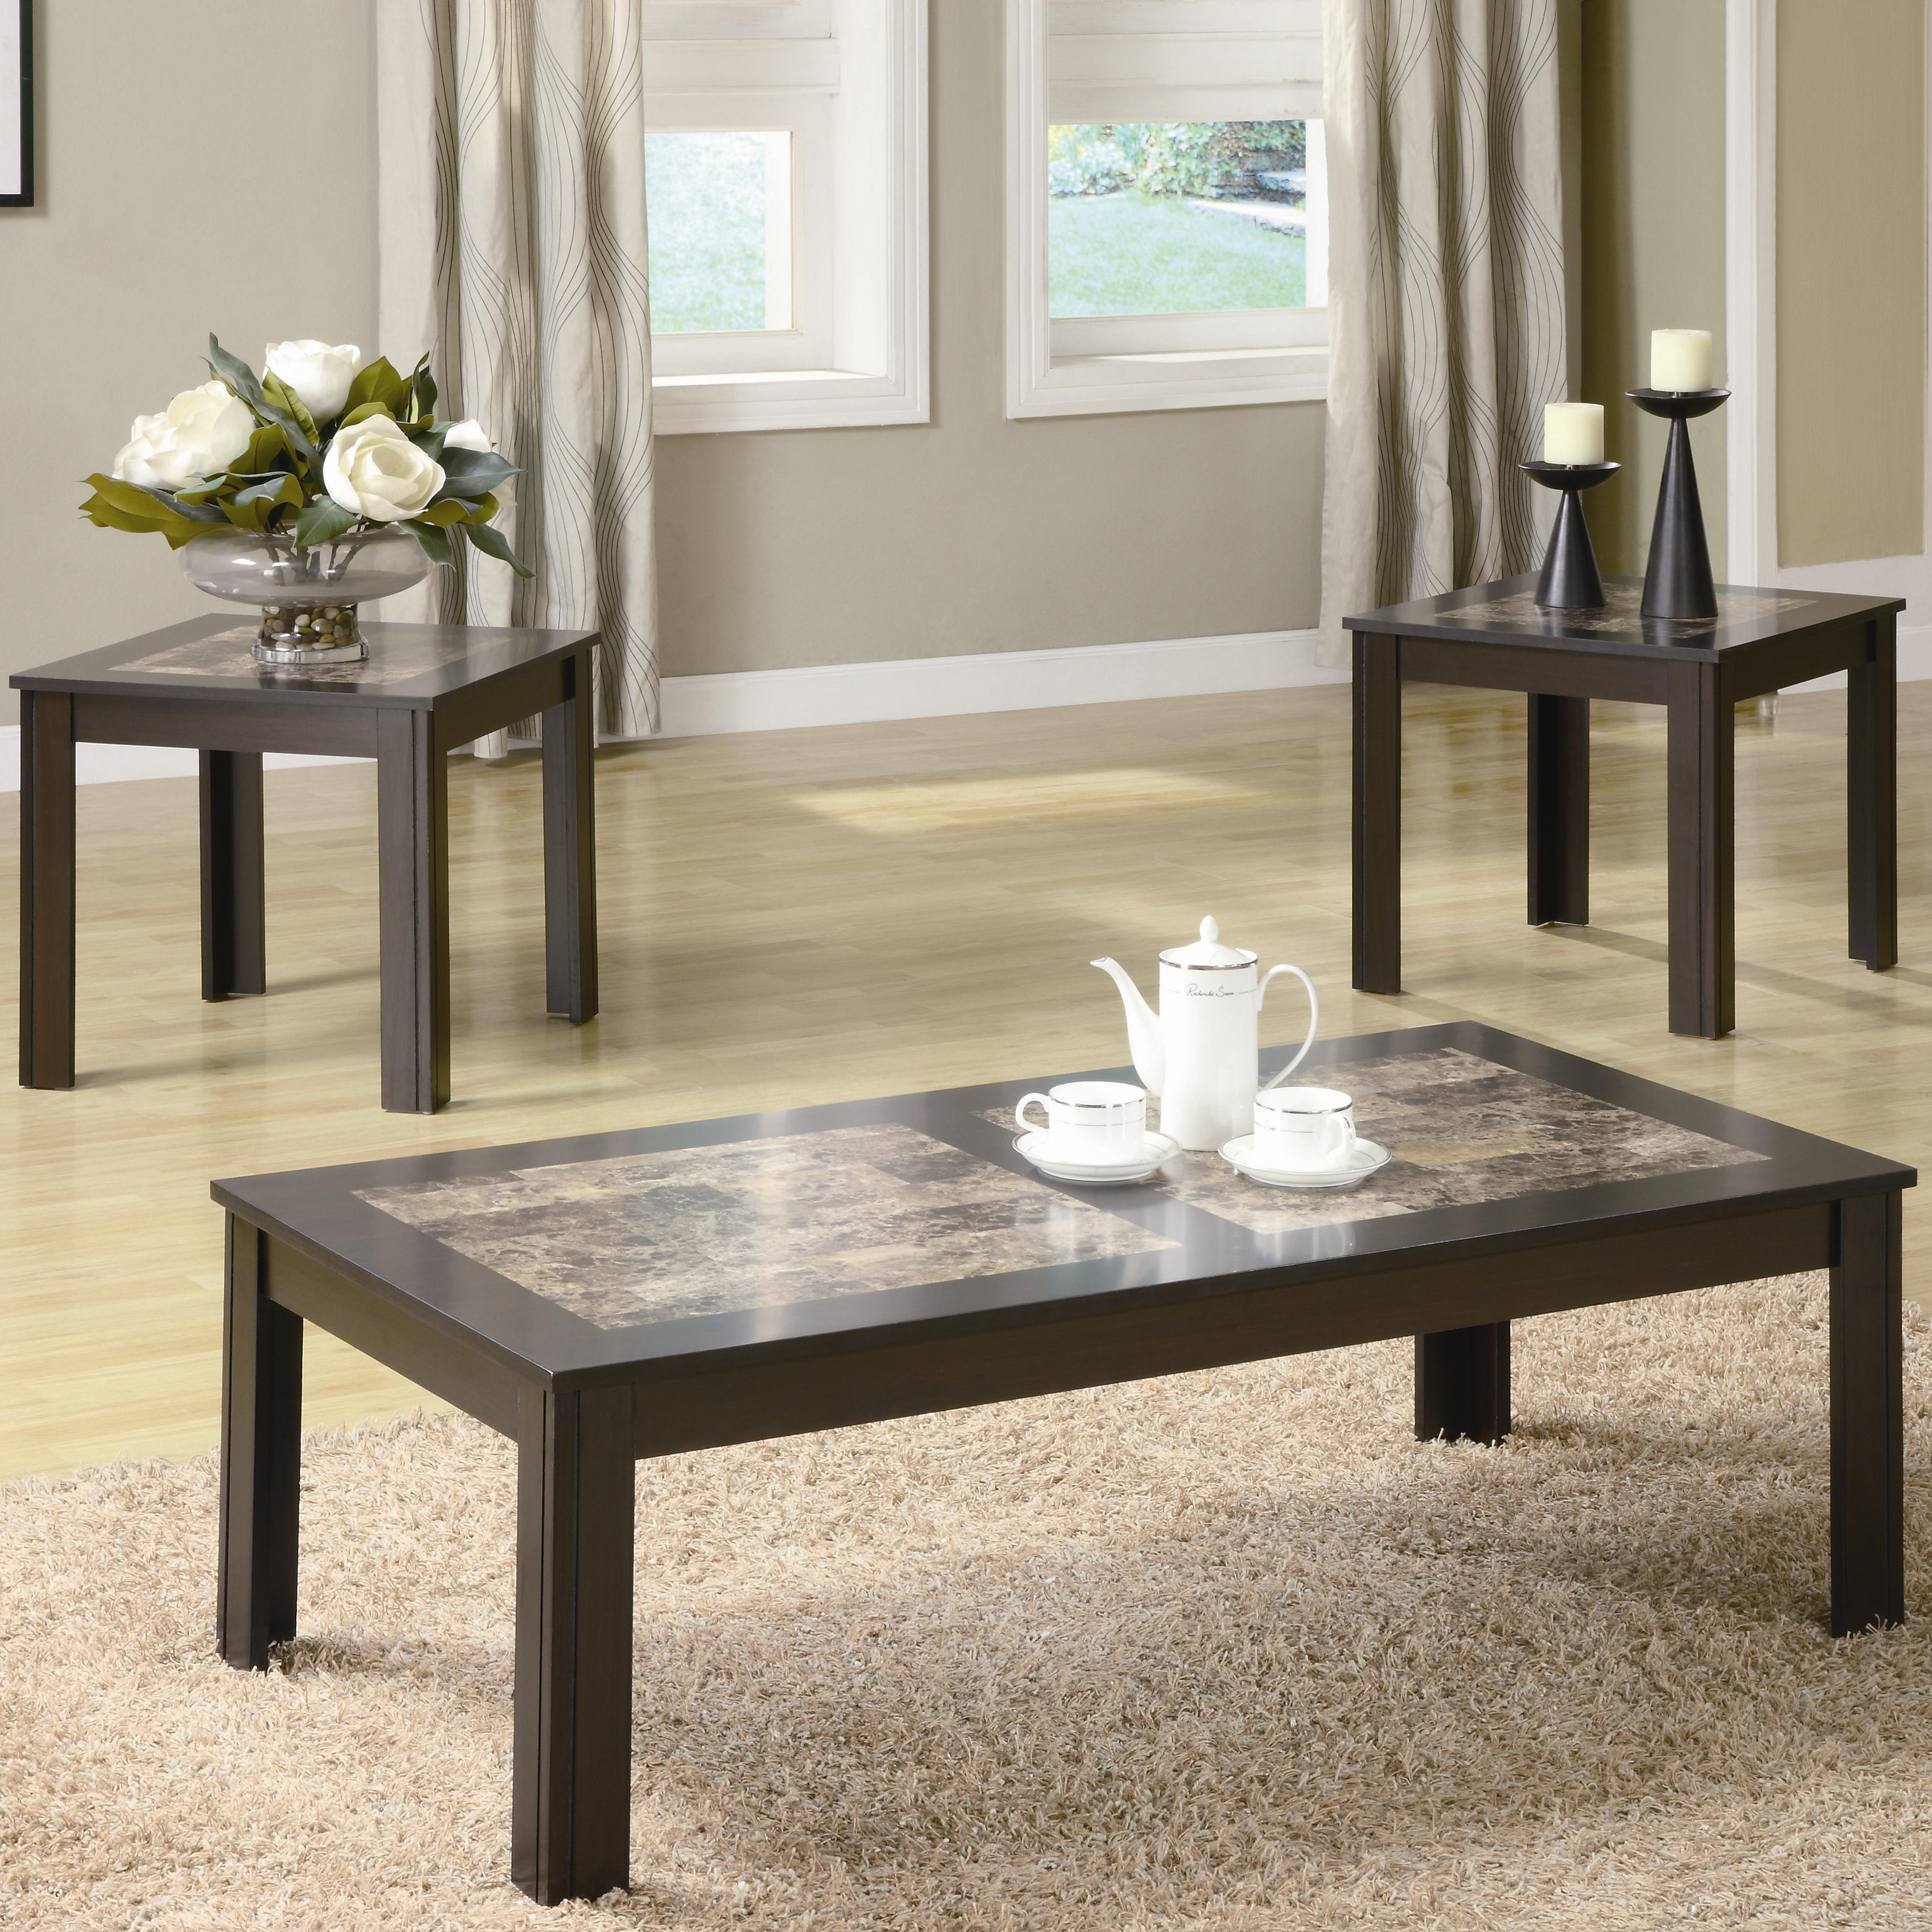 coaster occasional table sets modern coffee table and end table set coaster fine furniture - Modern Coffee Table Sets